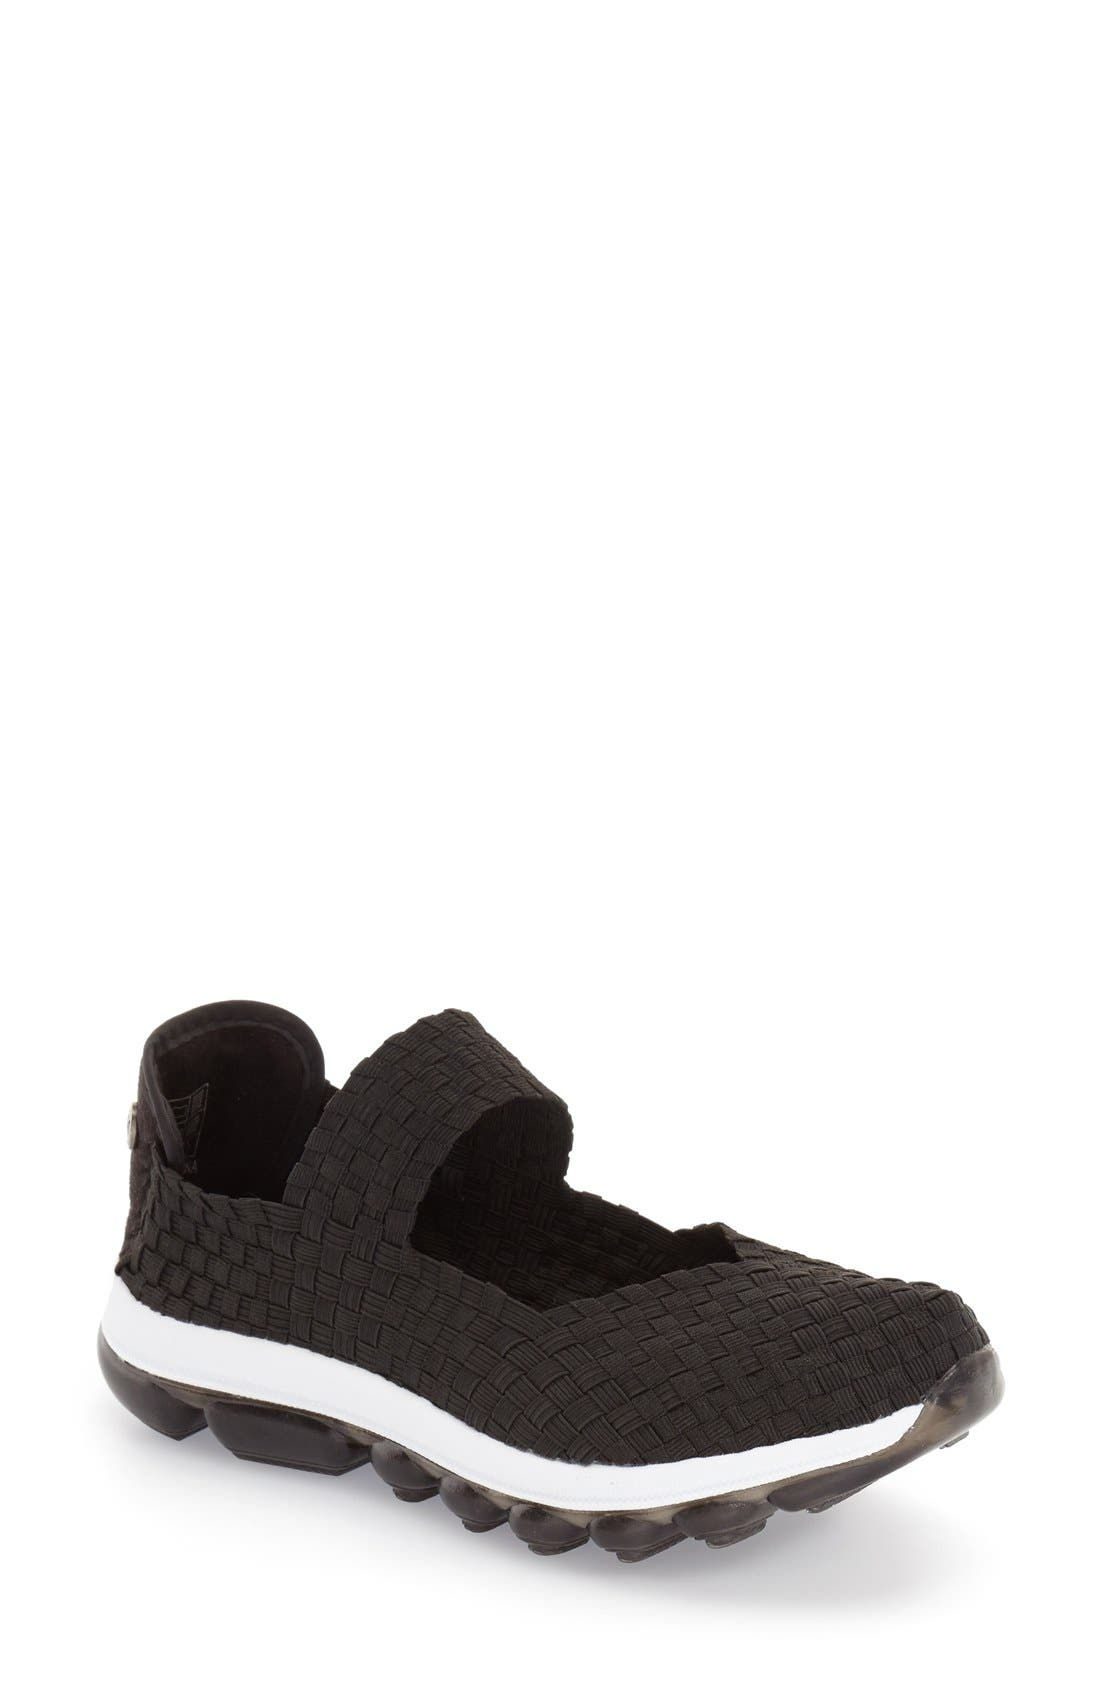 'Gummies Charm' Stretch Woven Slip-On Sneaker,                         Main,                         color, Black Fabric